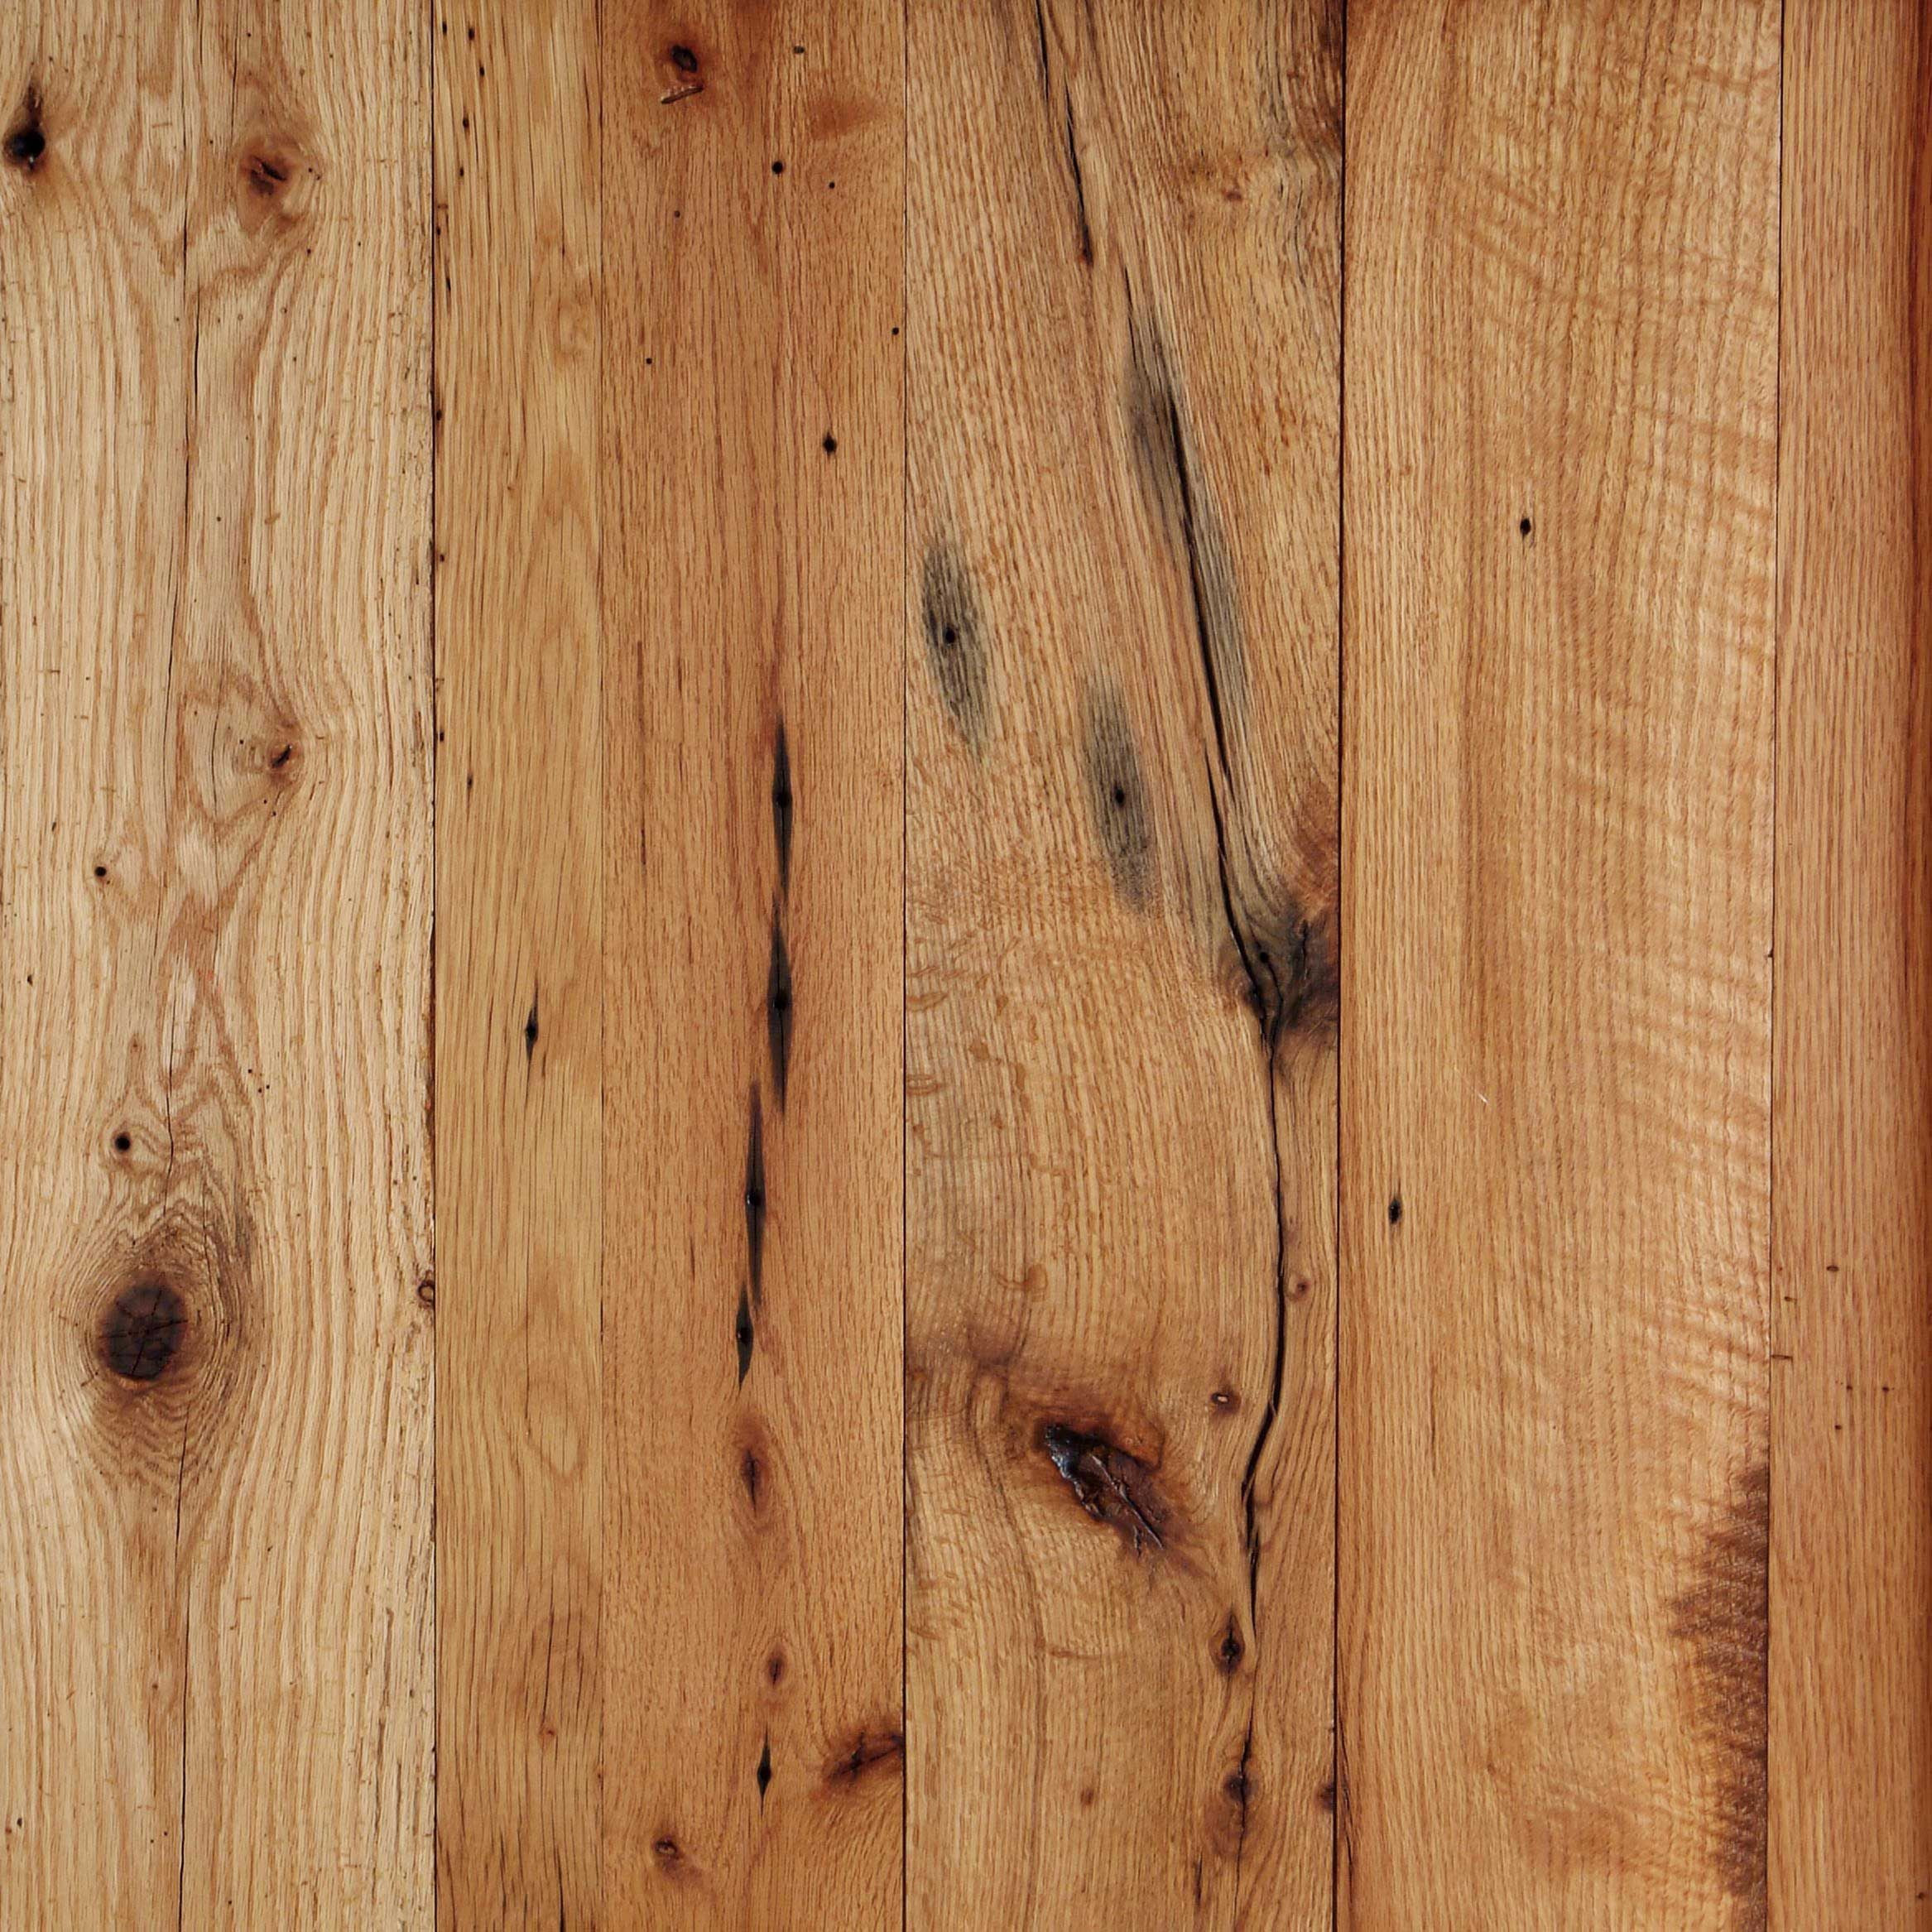 Hardwood Flooring north York Of Reclaimed Salvaged Antique Red Oak Flooring Wide Boards Knots In Reclaimed Salvaged Antique Red Oak Flooring Wide Boards Knots